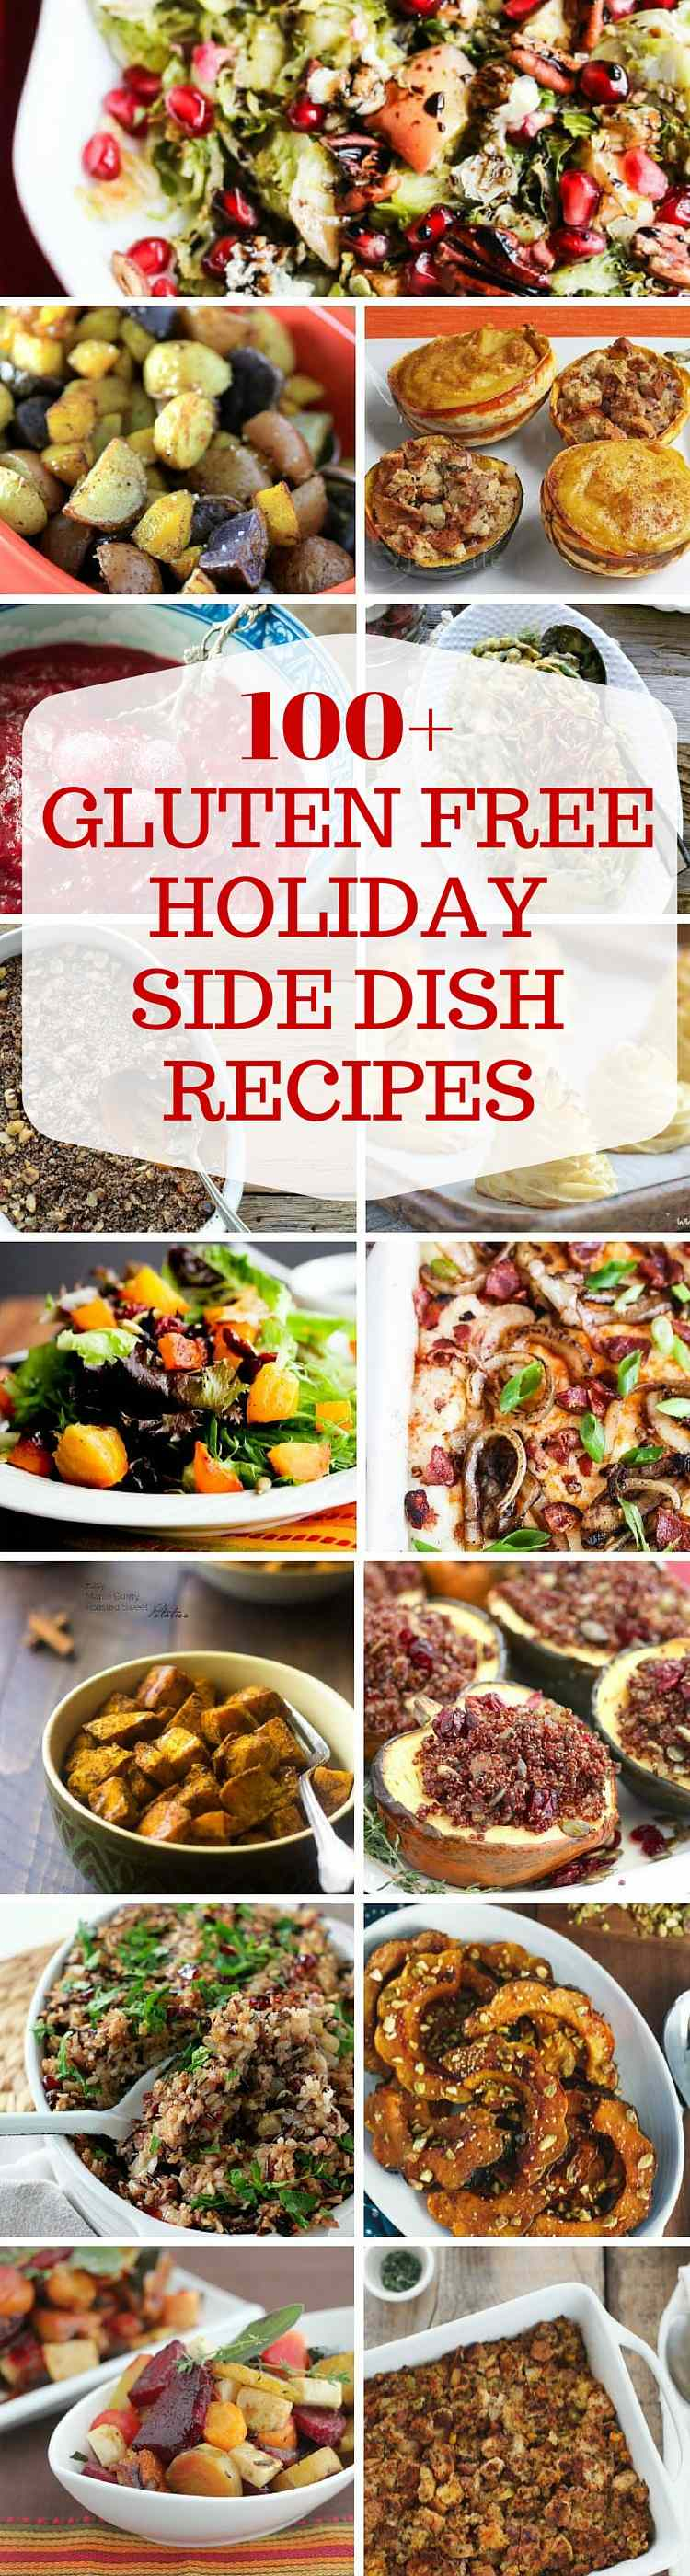 100+ GLUTEN FREE HOLIDAY SIDE DISH RECIPES - Tons of gluten-free holiday side dish recipes, including stuffing, sweet potato casseroles, green bean casserole, gratins, salads and gravy